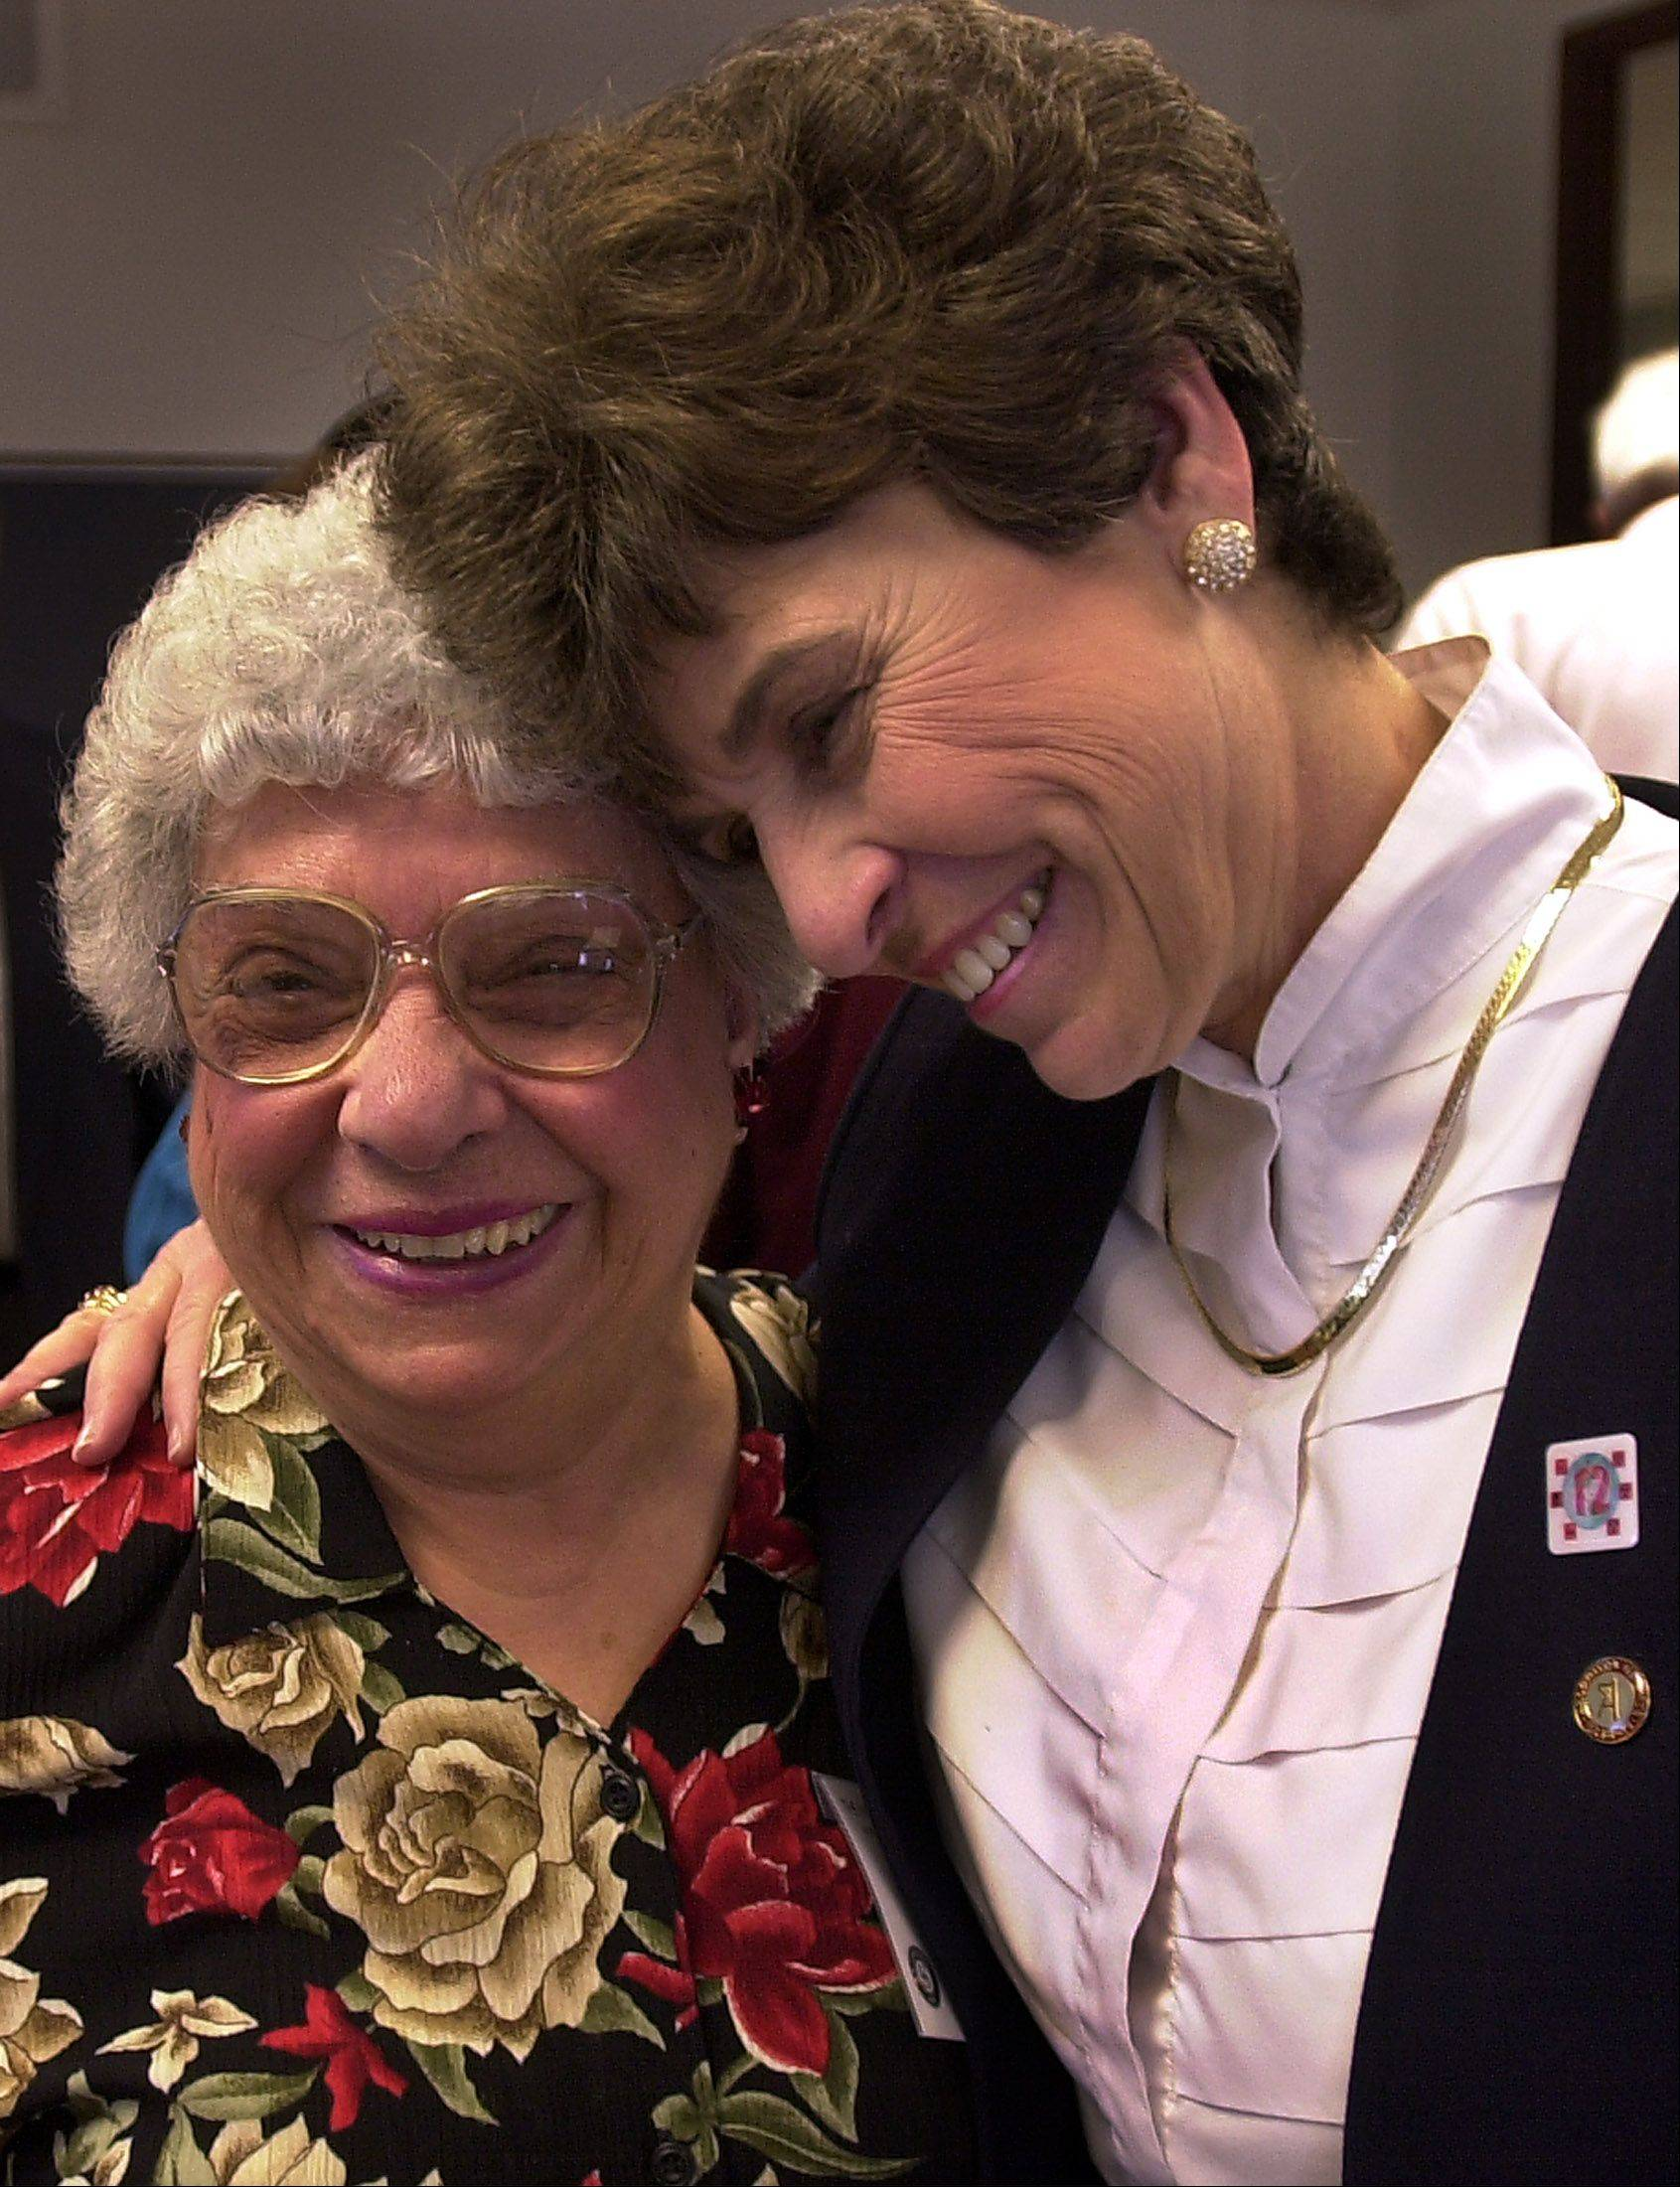 Longtime Arlington Heights volunteer Grace Fiebig and Mayor Arlene Mulder share a hug at a 2003 volunteer celebration hosted by The Volunteer Center (now HandsOn Suburban Chicago). Fiebig, now 93 and still active, attended Mulder's farewell party on April 28, 2013.